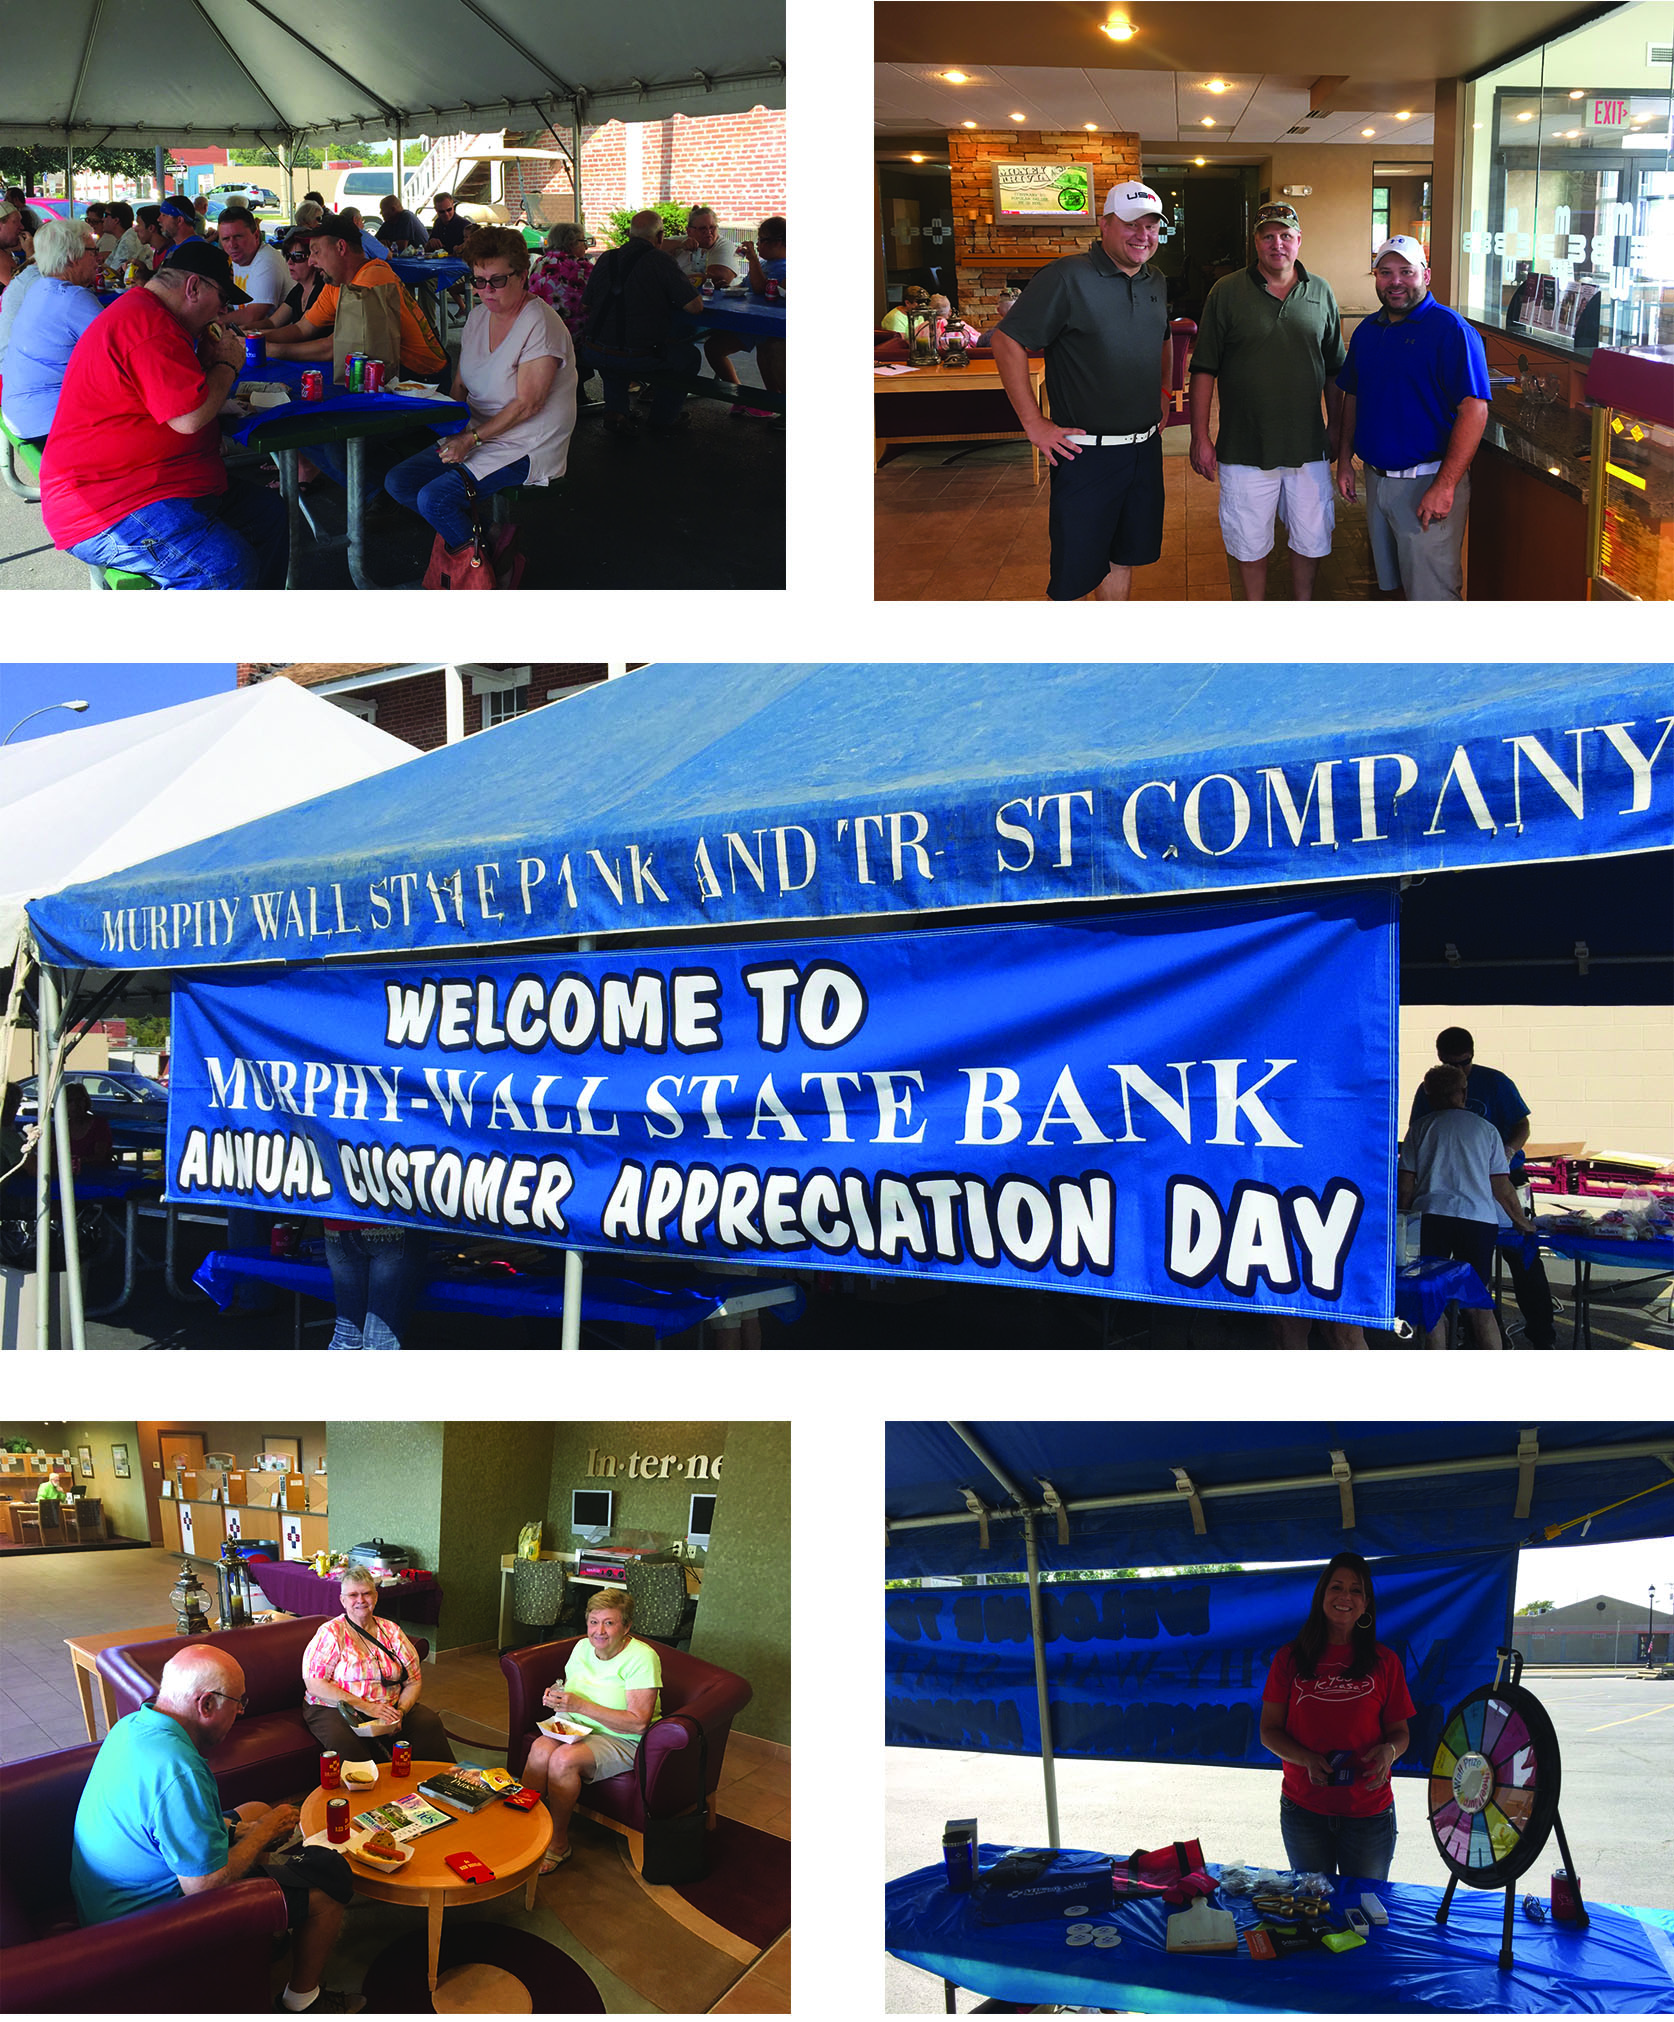 "Top Left: Customer gather for their meal served by Murphy-Wall State Bank and Trust Company. Top right: Customers pose for the 2017 Customer Appreciation Day. Middle: Large sign stating ""Welcome to Murphy-Wall State Bank and Trust Company's Annual Customer Appreciation Day"". Bottom Left: Customers sit and eat around a table at the Murphysboro facility. Bottom Right: Susan Davis stands next to the prize wheel for customers."